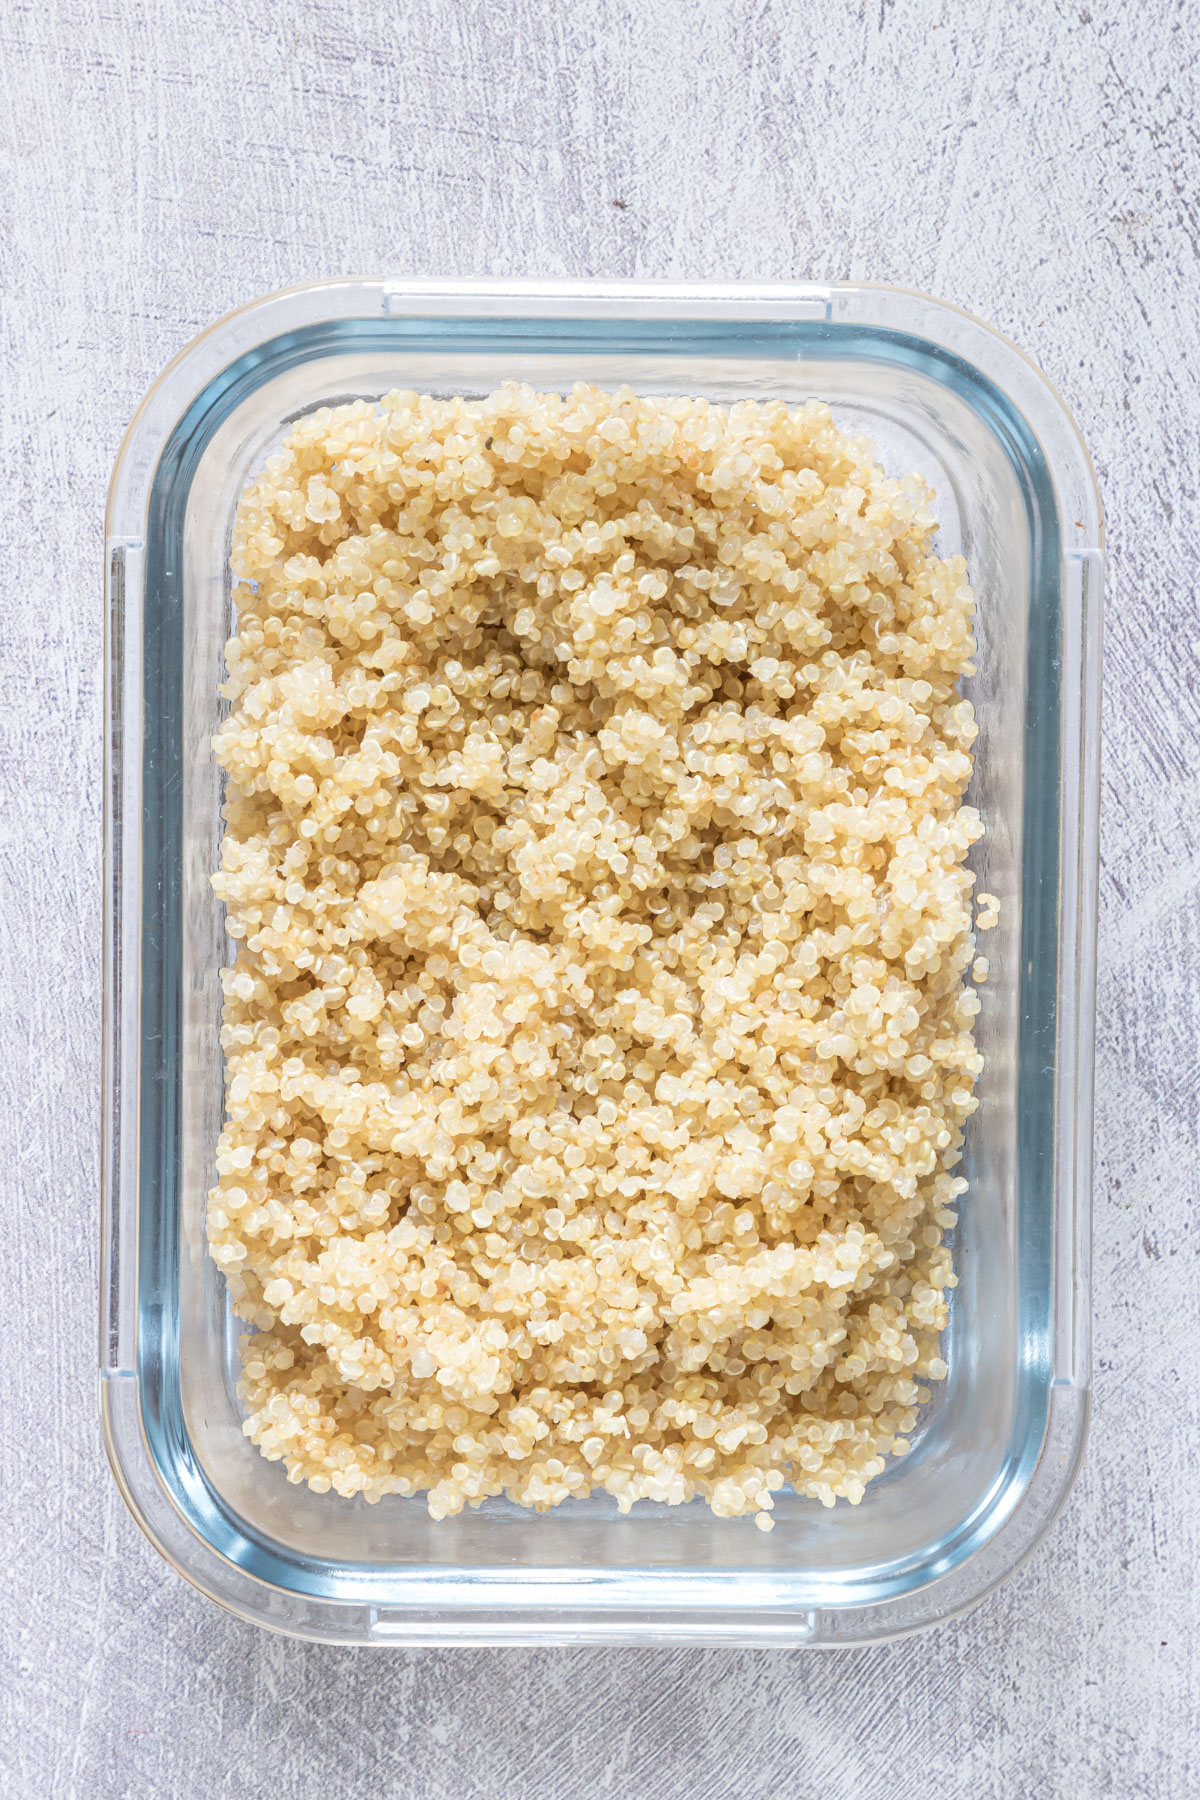 cooked quinoa in a galss meal prep container